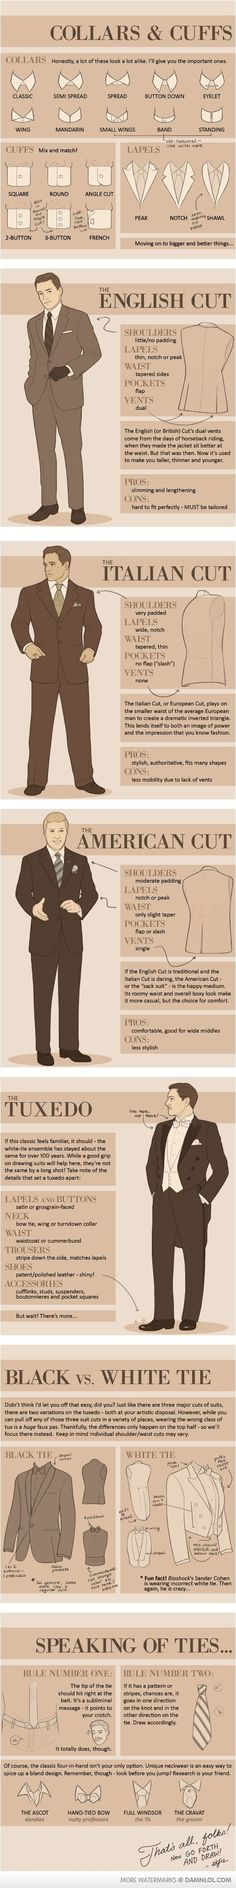 Guide to Men's Clothing: Collars & cuffs, Suit cuts, Tuxedos, and ties. (It's a guide for drawing these items, but it's a perfect reference.)